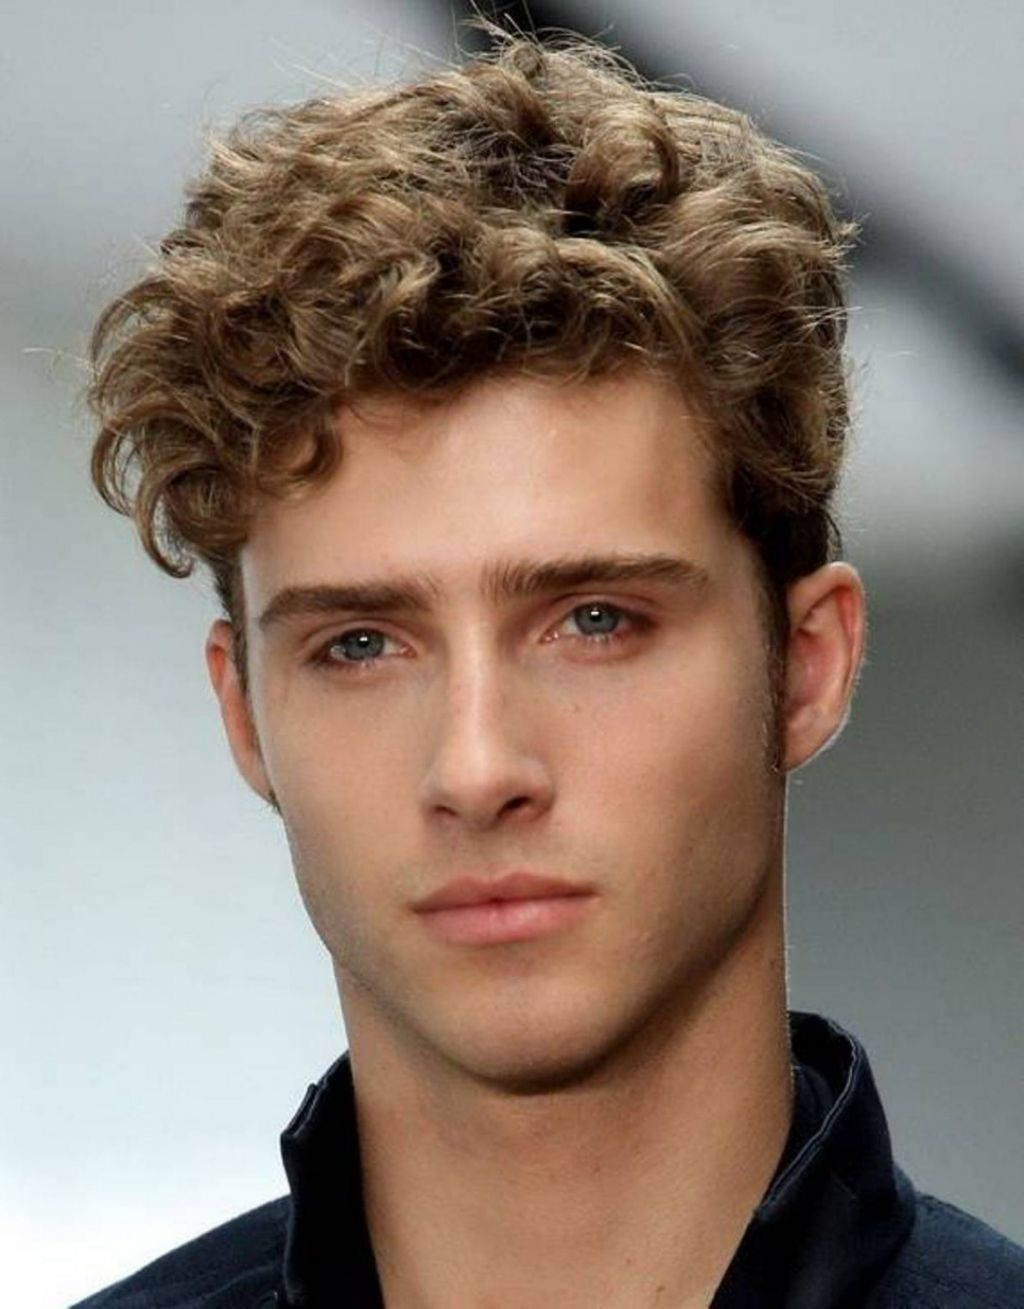 60-fresh-hairstyles-for-men-with-thick-wavy-hair-hairstyle-men-thick-wavy-hair-very-short-hairstyles-men-thick-hair